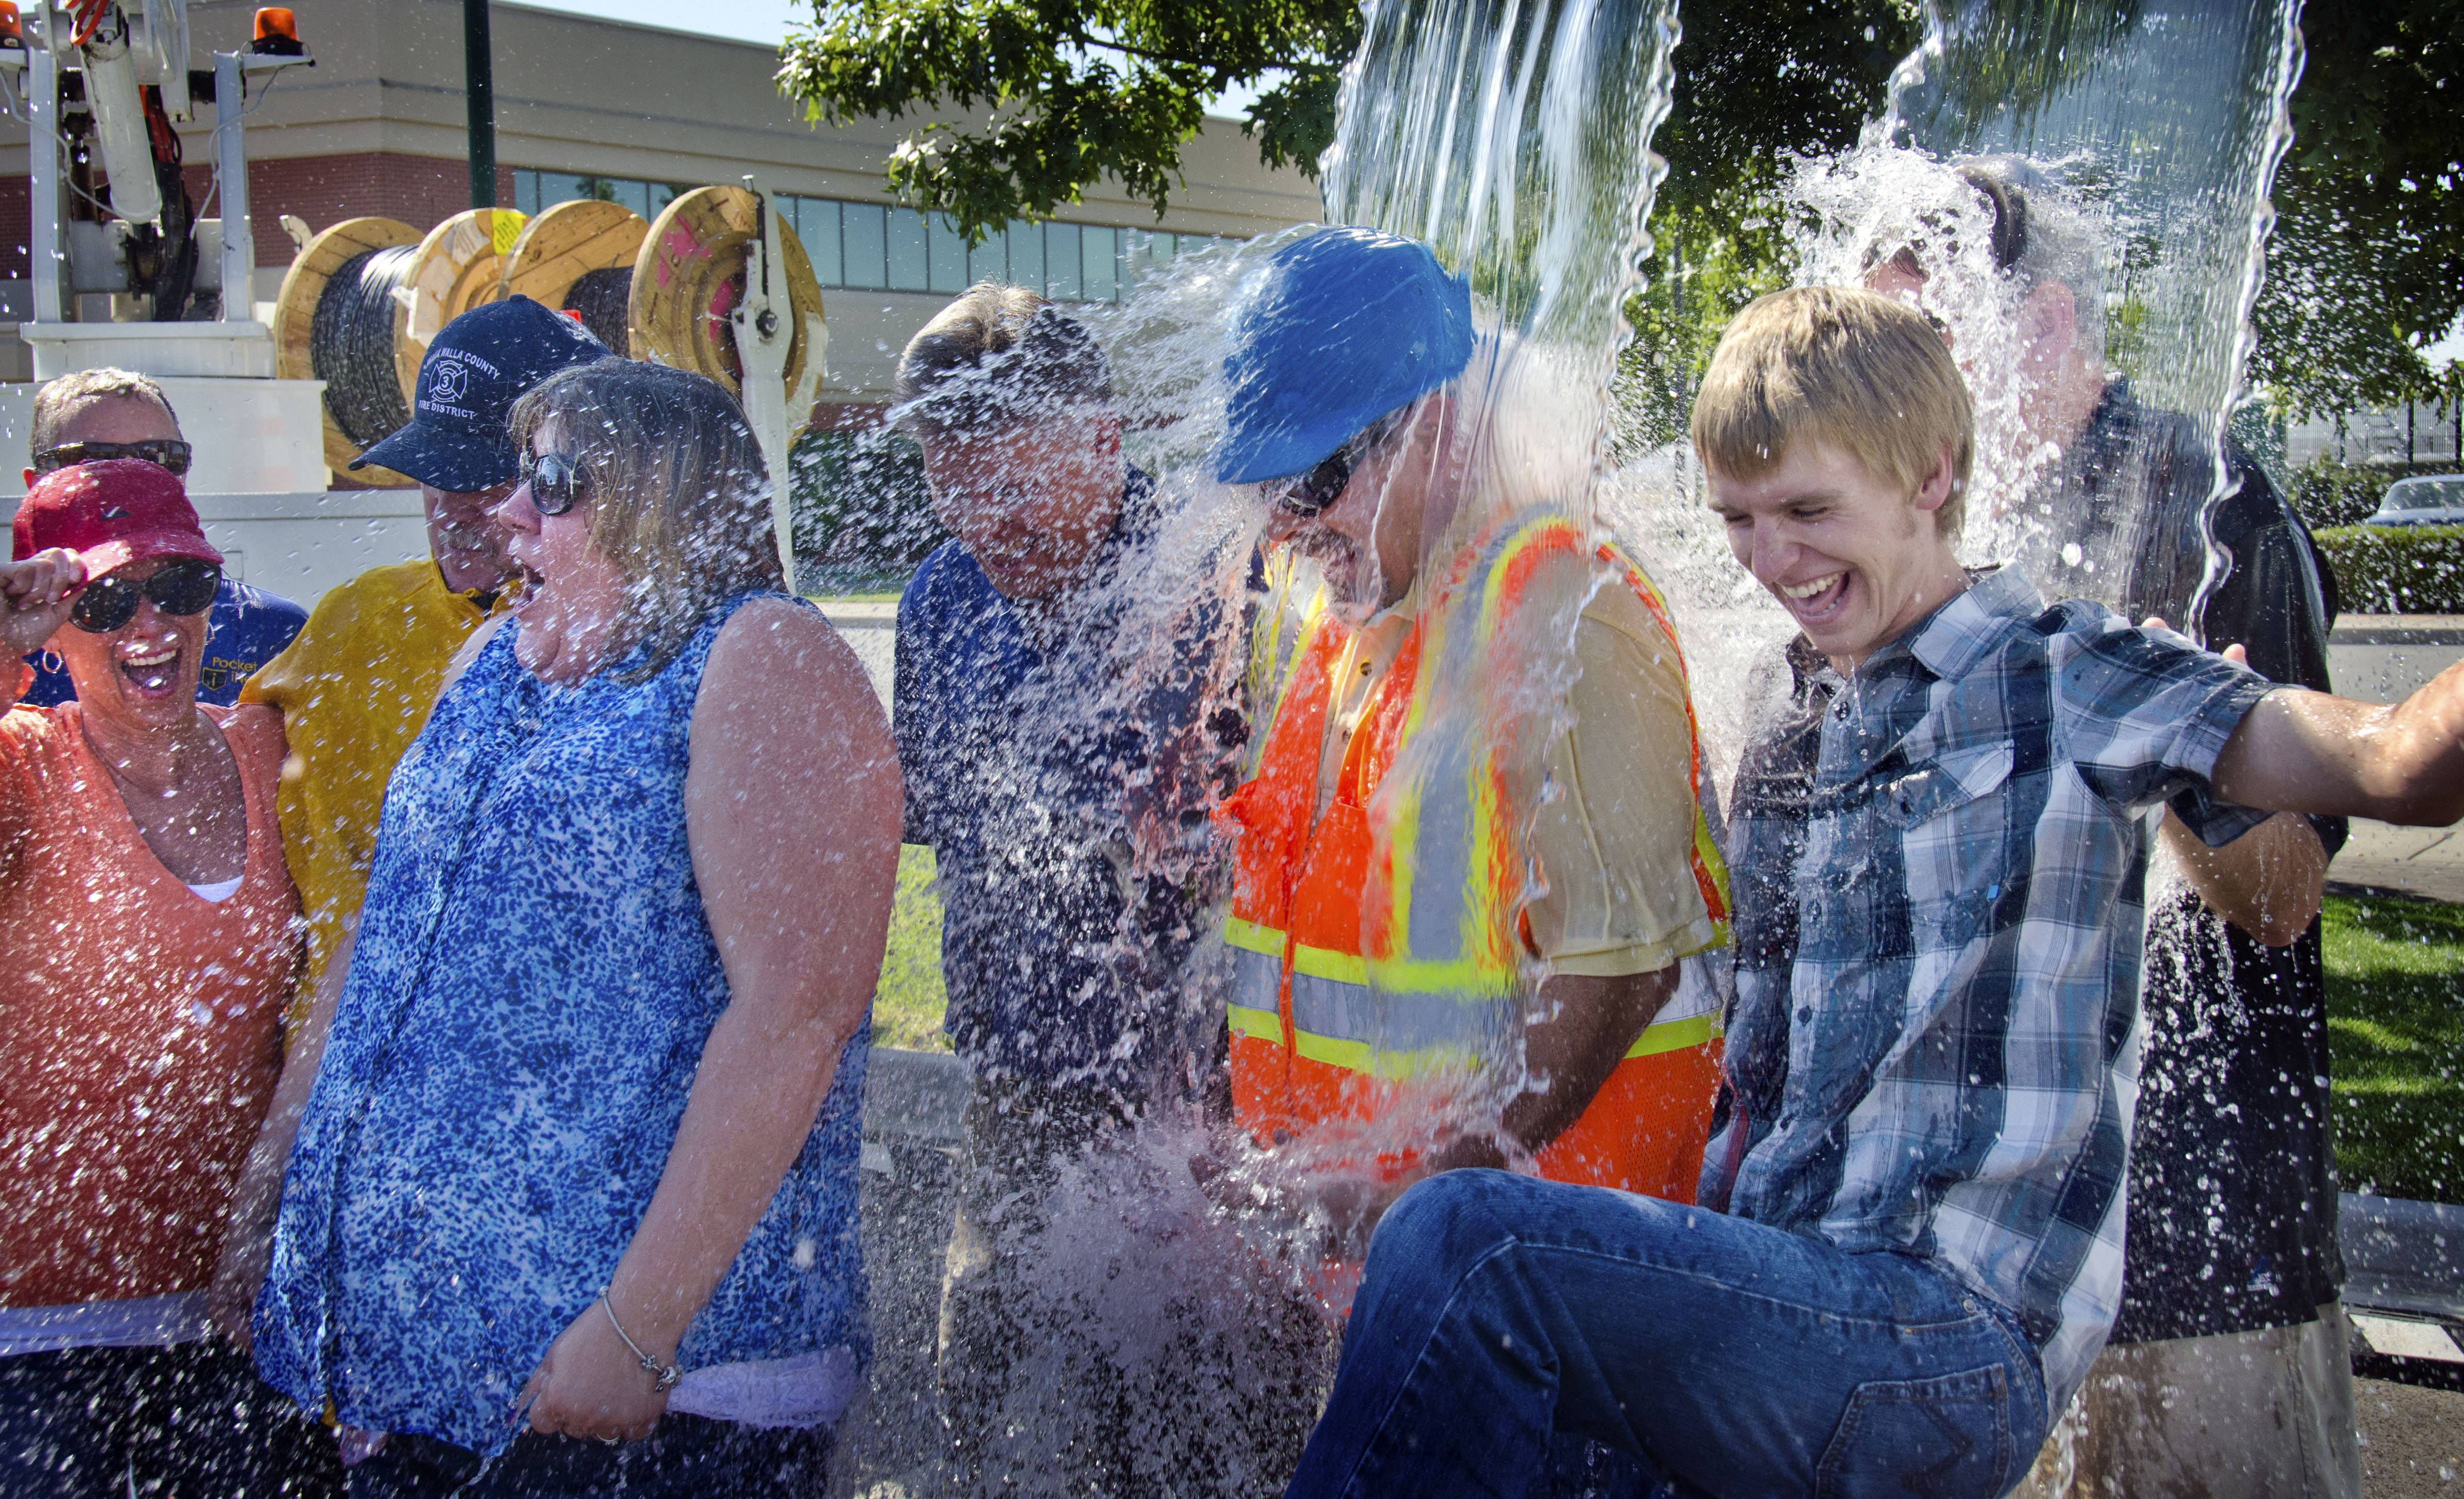 In this photo taken on Tuesday, Ten Pocket iNet corporation employees take the ice bucket challenge at the Walla Walla Regional Airport in Walla Walla, Wash., to benefit ALS research.